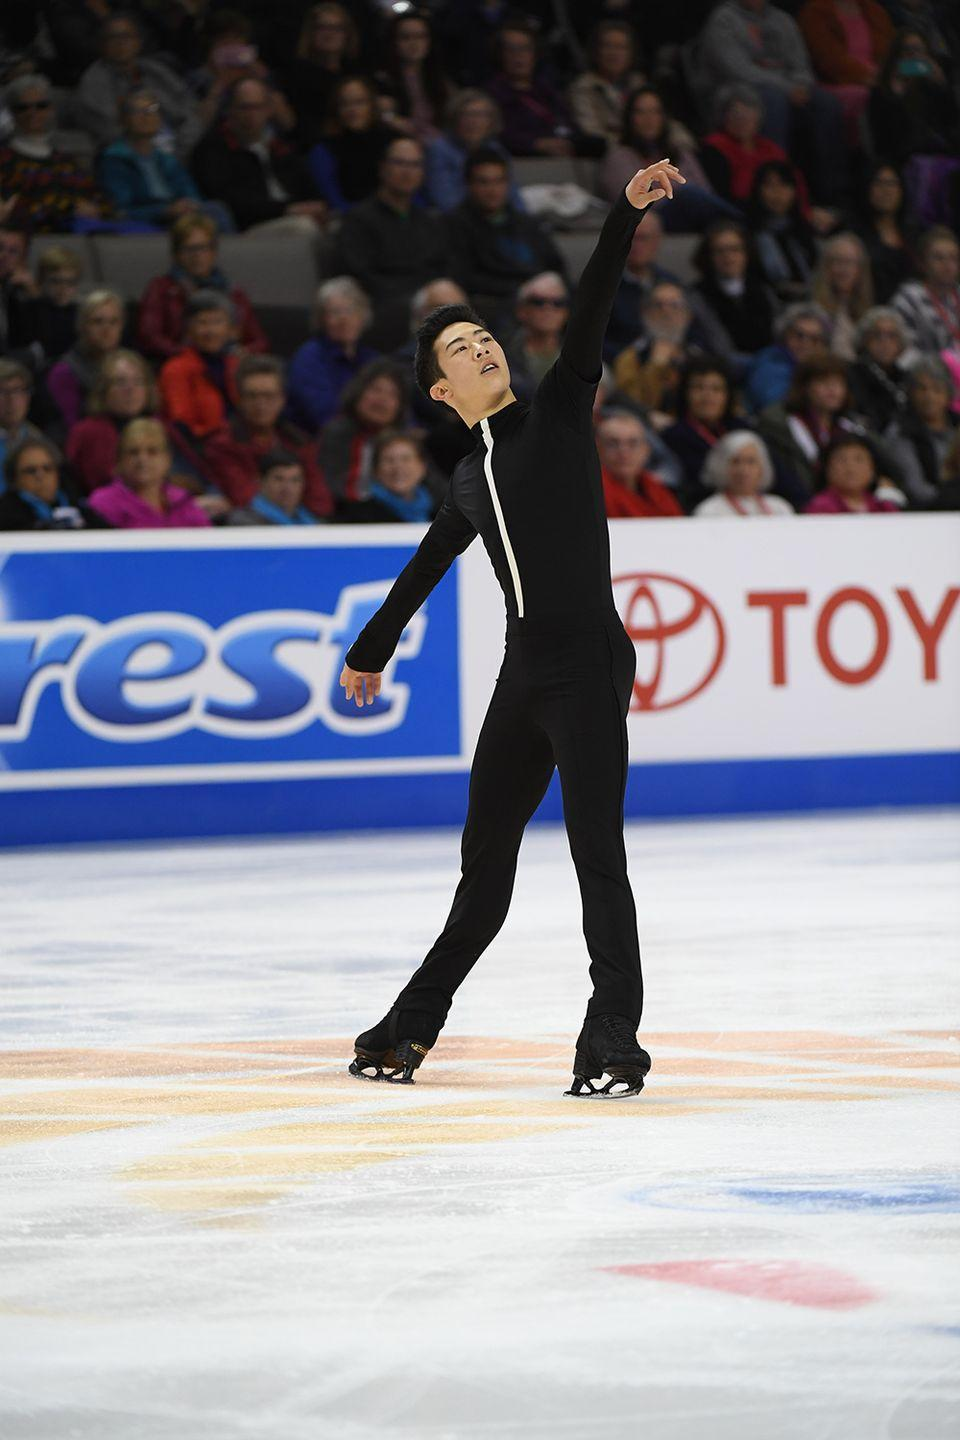 <p><strong>Age: </strong>18</p><p><strong>Hometown:</strong> Salt Lake City, UT</p><p><strong>Event:</strong> Figure Skating</p><p>Nathan Chen trains for four or five hours per day when he's prepping for competition, rising at 7:30am and fitting in three sessions before he hits the hay at night. When he's not on the ice, you can find him doing weight-based workouts at the gym or biking outside, which means he carries lots of snacks with him to stay fueled throughout the day — luckily his mom is a big help in keeping his meals organized.</p>